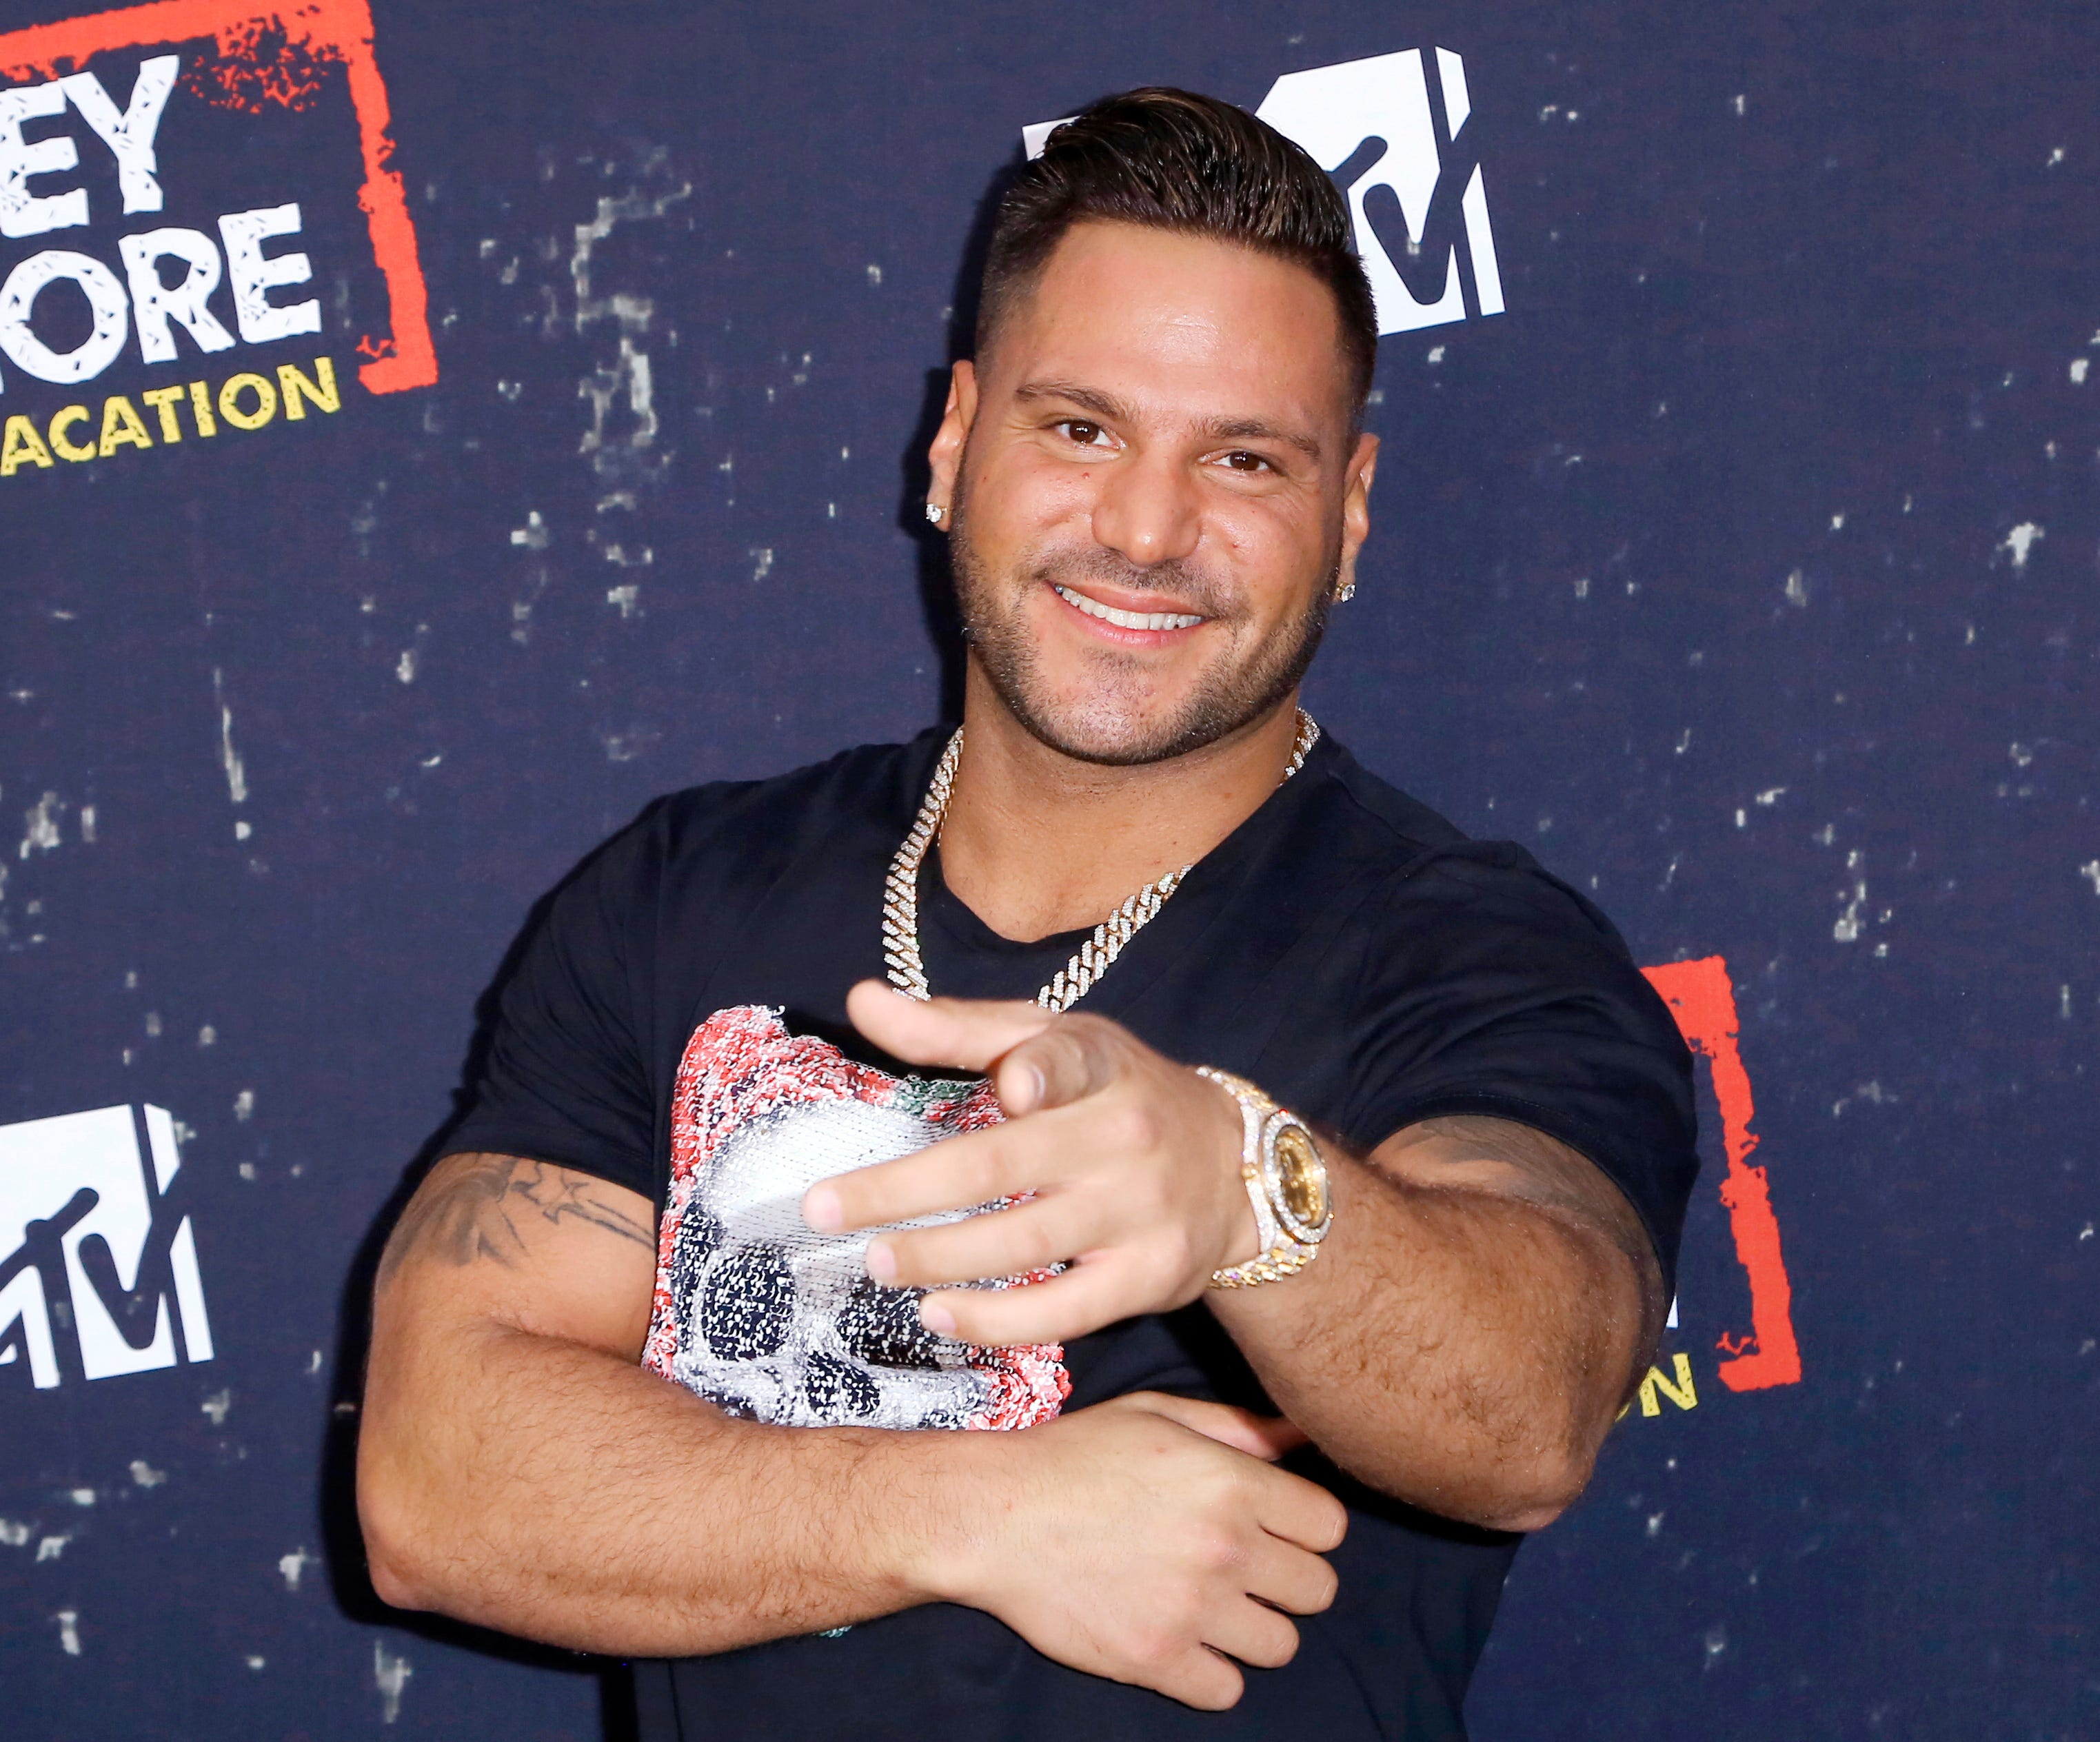 Jersey Shore: Ronnie Ortiz-Magro pleads no contest, avoids jail in ...